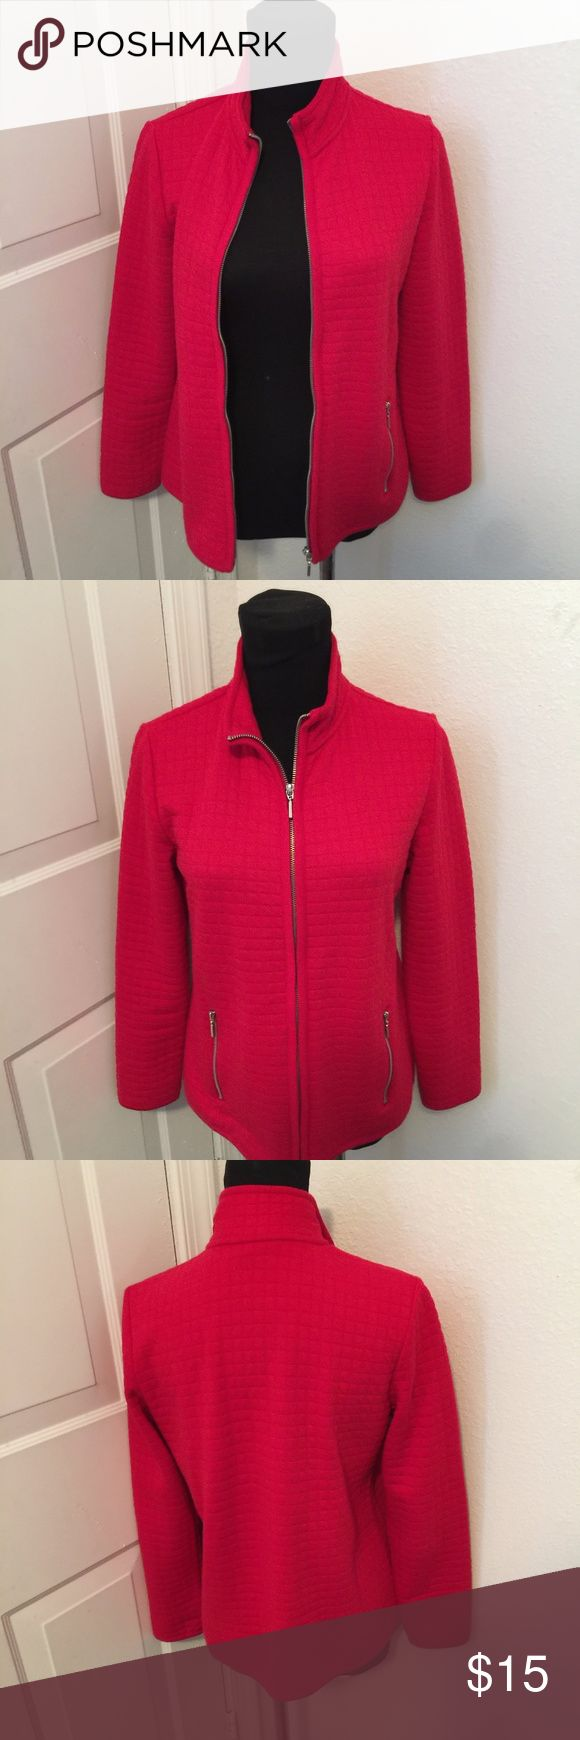 PS Karen Scott Women's Petite Quilted Red Zip Karen Scott red sport jacket in a size p/s. In good condition. 52% Cotton 48% Polyester. Karen Scott Jackets & Coats Utility Jackets